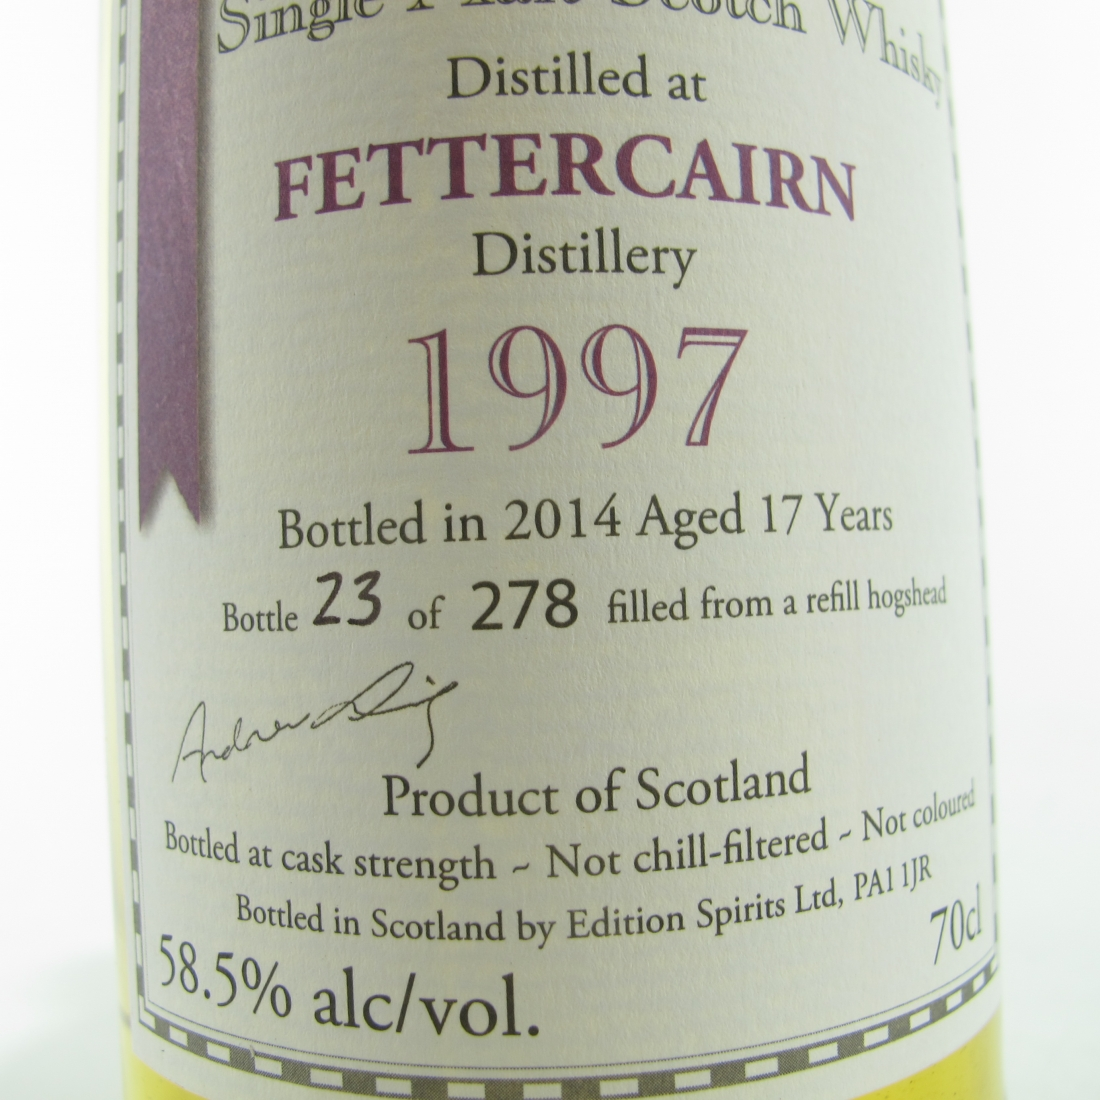 Fettercairn 1997 Edition Spirits 17 Year Old